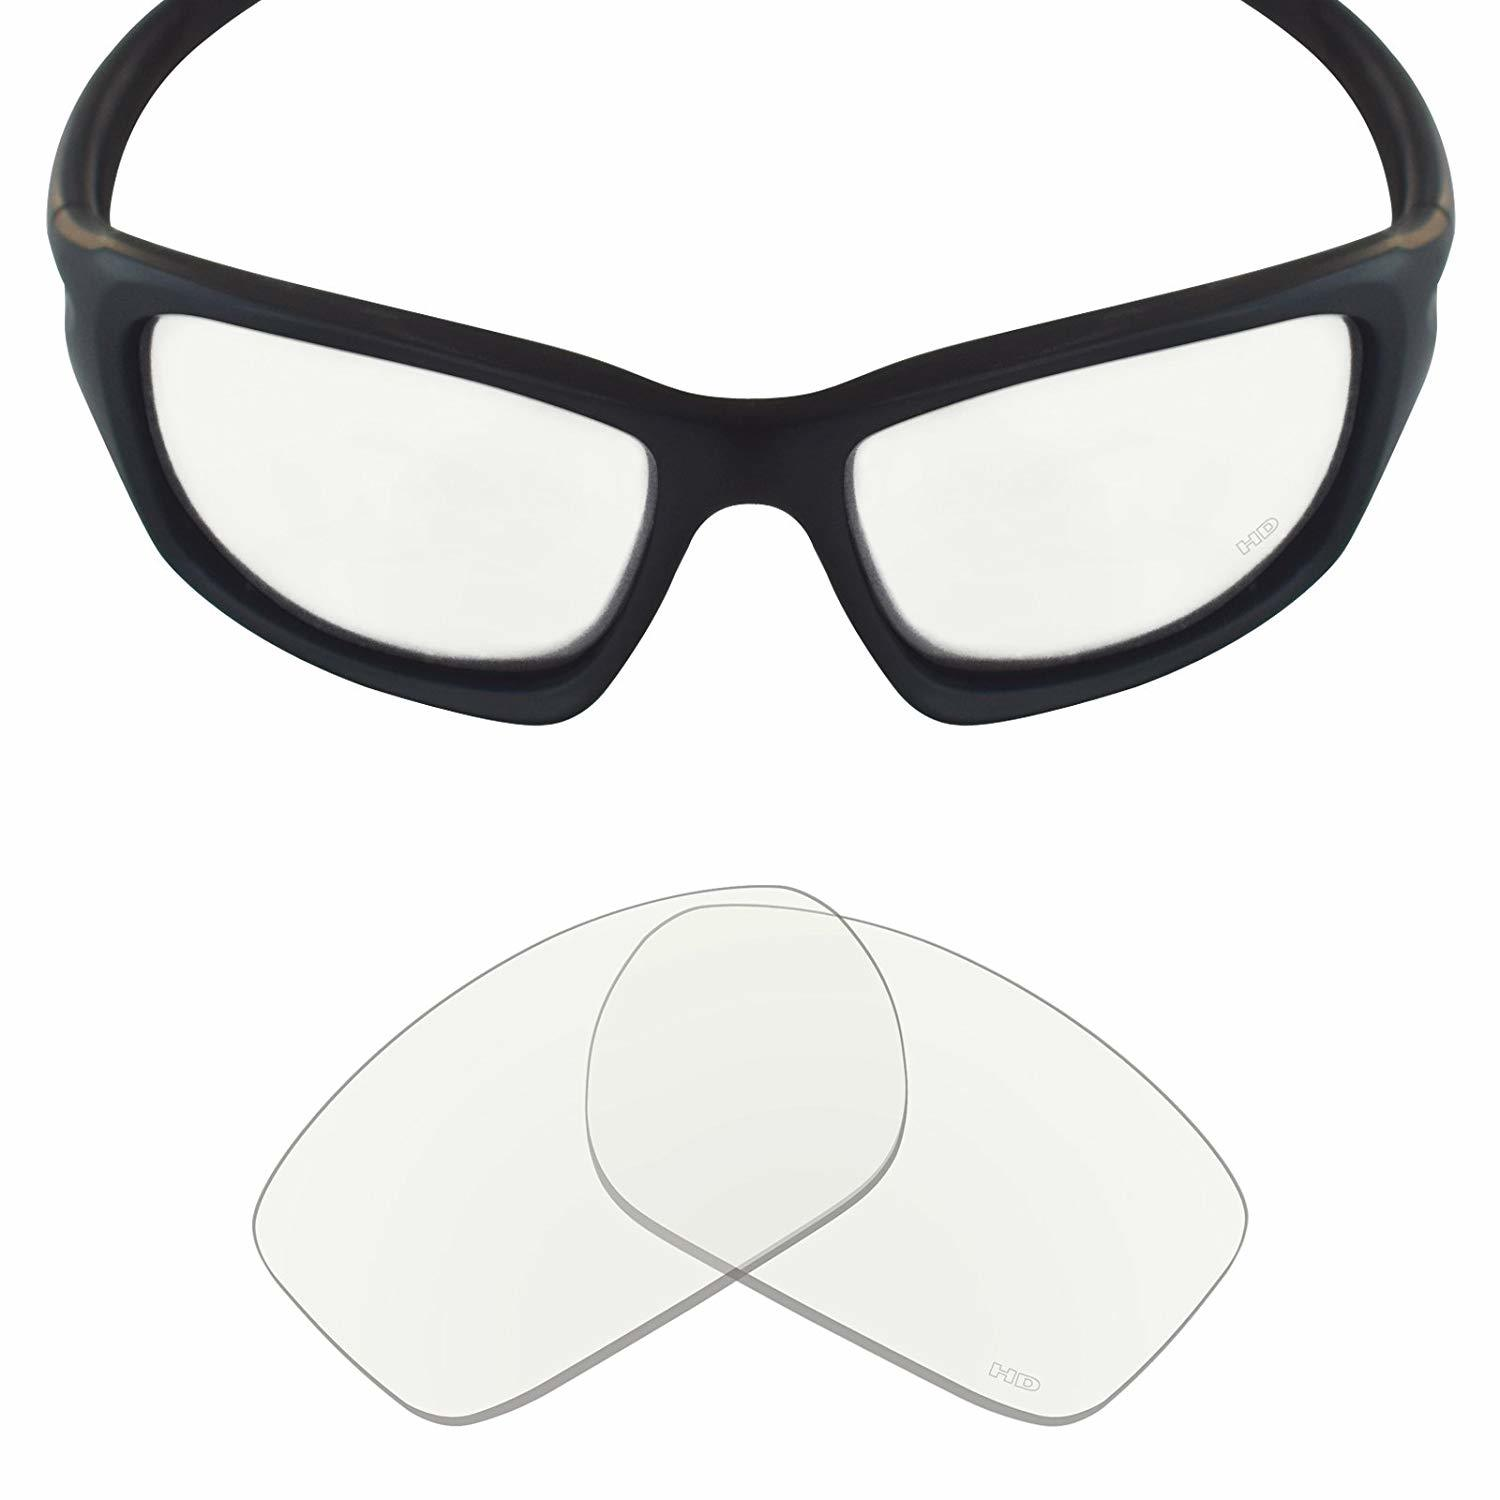 494e2753d9 Polarized Replacement Lenses for Oakley and 50 similar items. 61i  2b8rdfsrl. ul1500